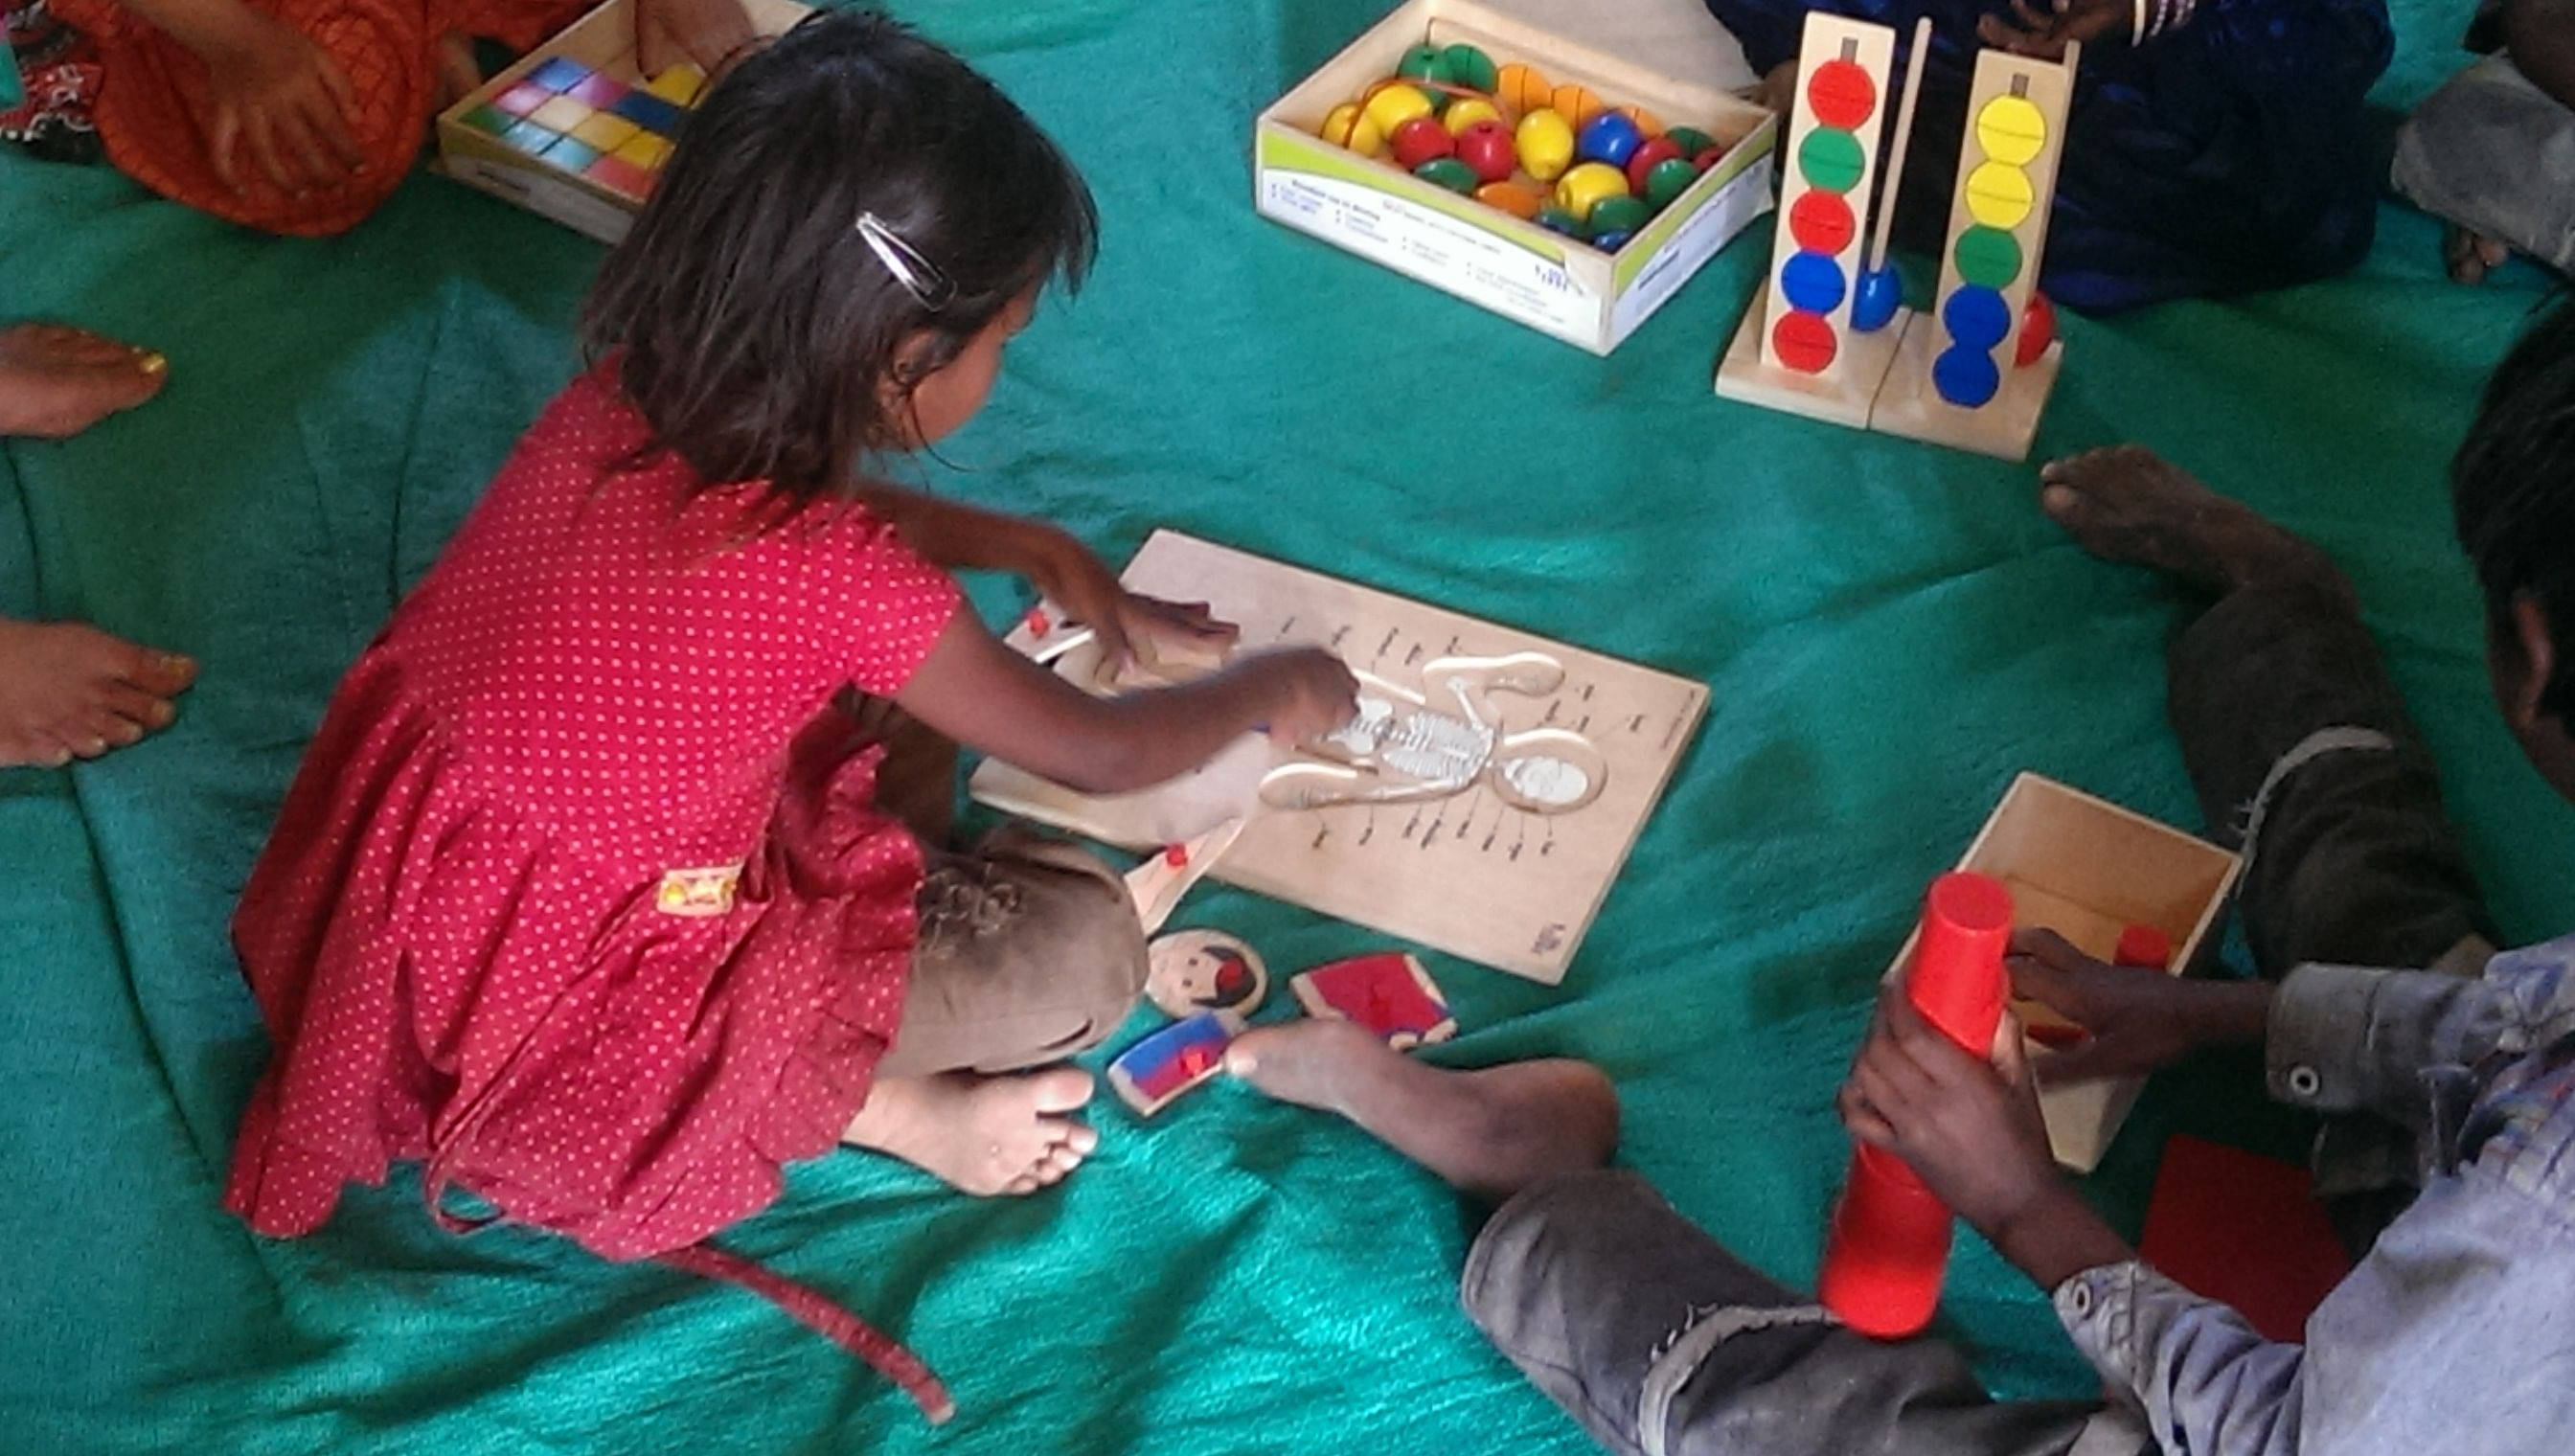 Montessori provides children freedom to learn on their own.